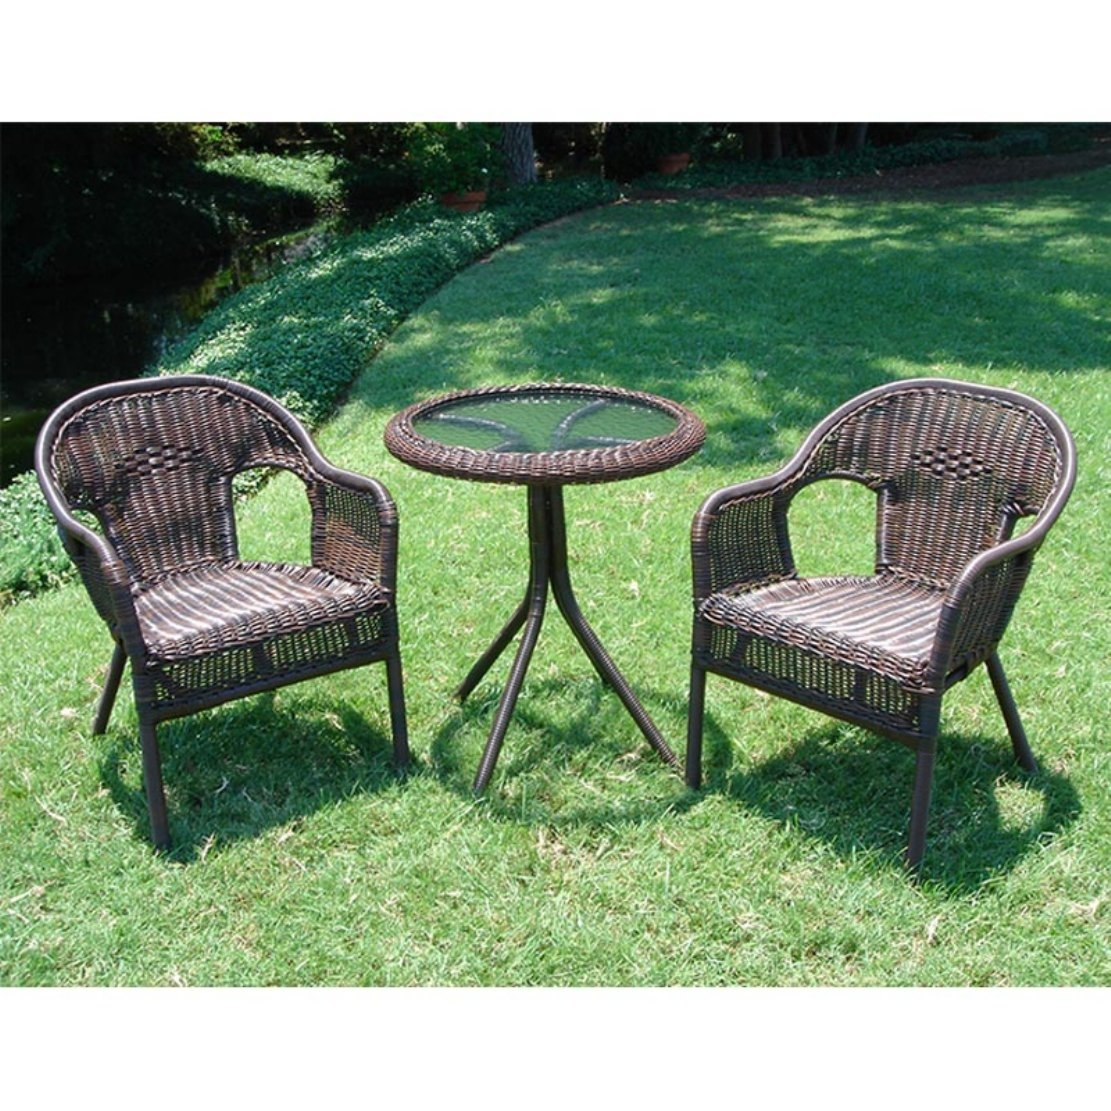 Outdoor Wicker Resin Patio Furniture Bistro Set in Mocha, SWRP3401 :  Sit back and enjoy a beverage out in the sun with this Outdoor Wicker Resin Patio Furniture Bistro Set in Mocha. With two wicker chairs and a glass-top table, this set is great for your entertainment and relaxation needs. Each chair has a steel frame and a deep-seating design that'll add to your comfort. The set also comes in several different finishes, so you can choose the right shade to fit your current décor. Wherever you put this delightful set, it'll bring a sense of style and comfort that's perfect for you and your guests. Chairs have deep seating and are comfortable; Available in several finishes.